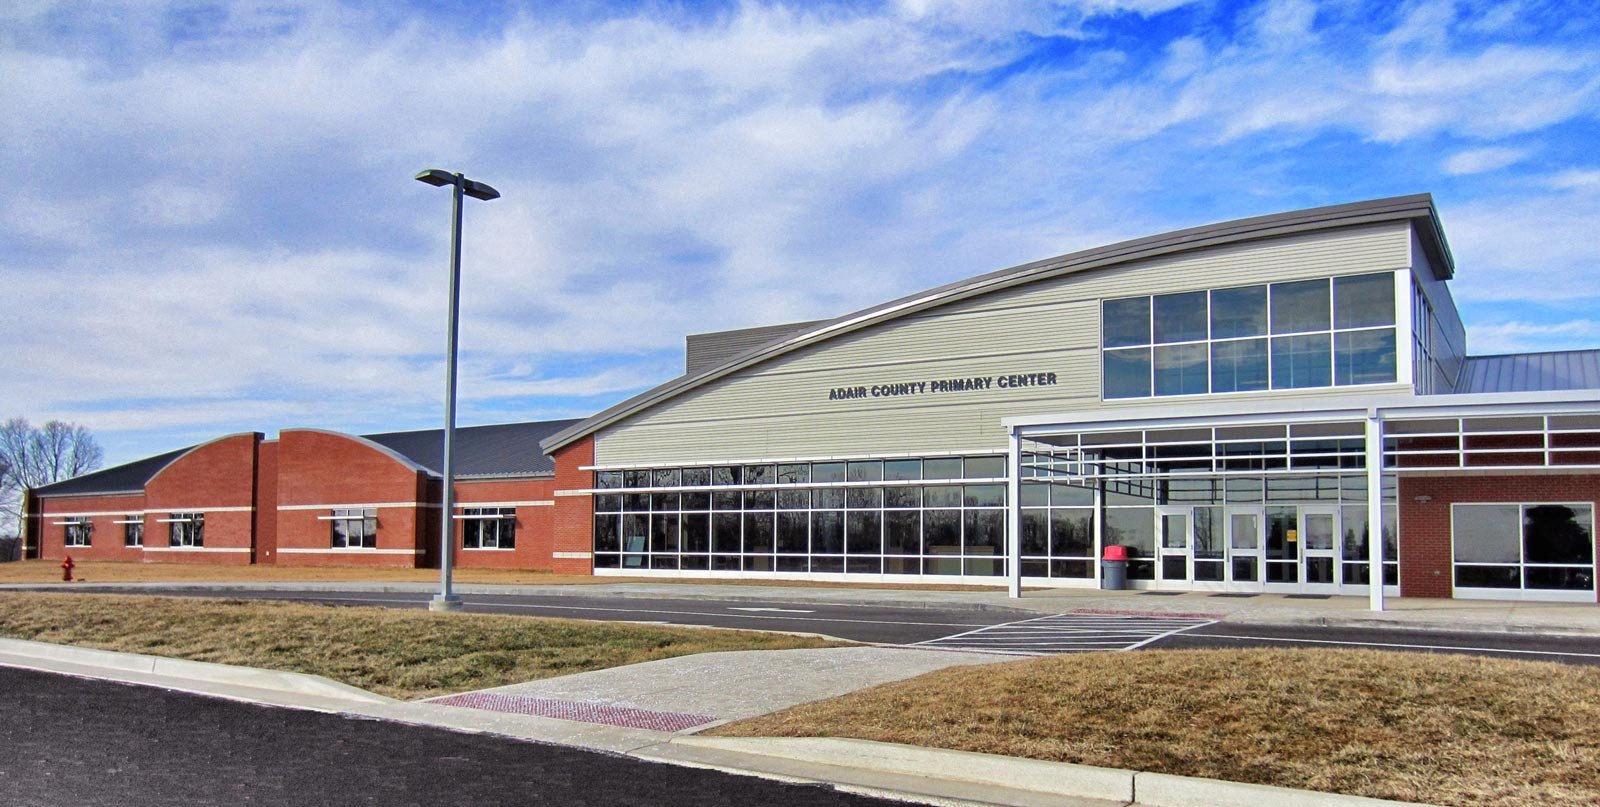 Adair County Primary Center